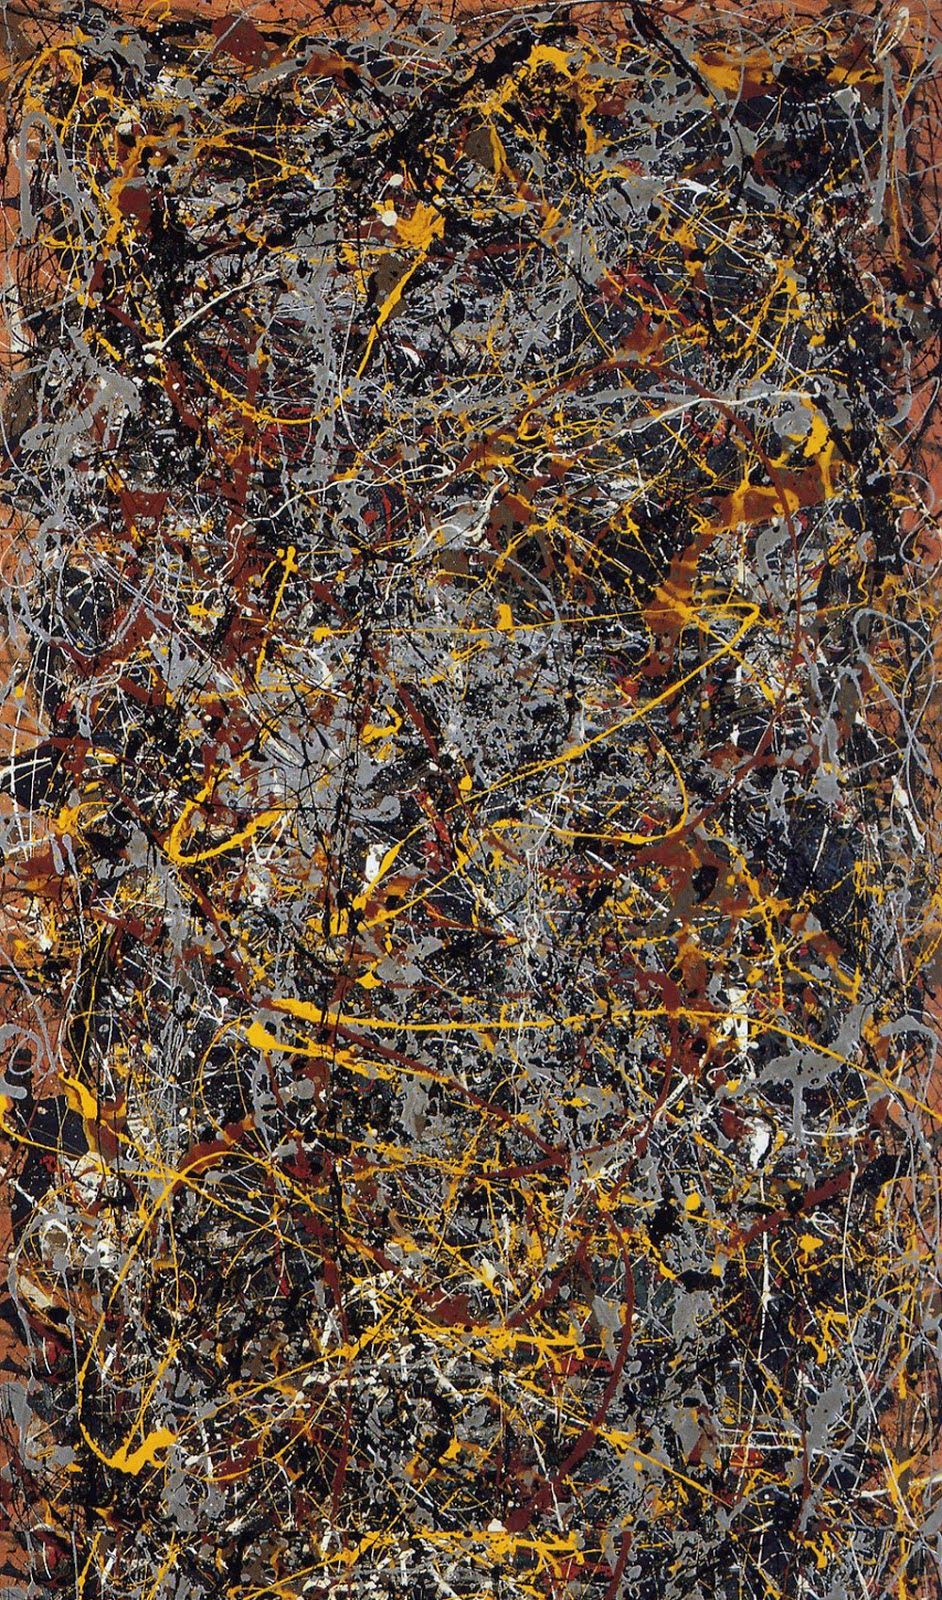 Top 5 Most Expensive Paintings Ever Sold I Lobo You Boca Do Lobo S Inspirational World Excl Most Expensive Painting Pollock Paintings Expensive Paintings